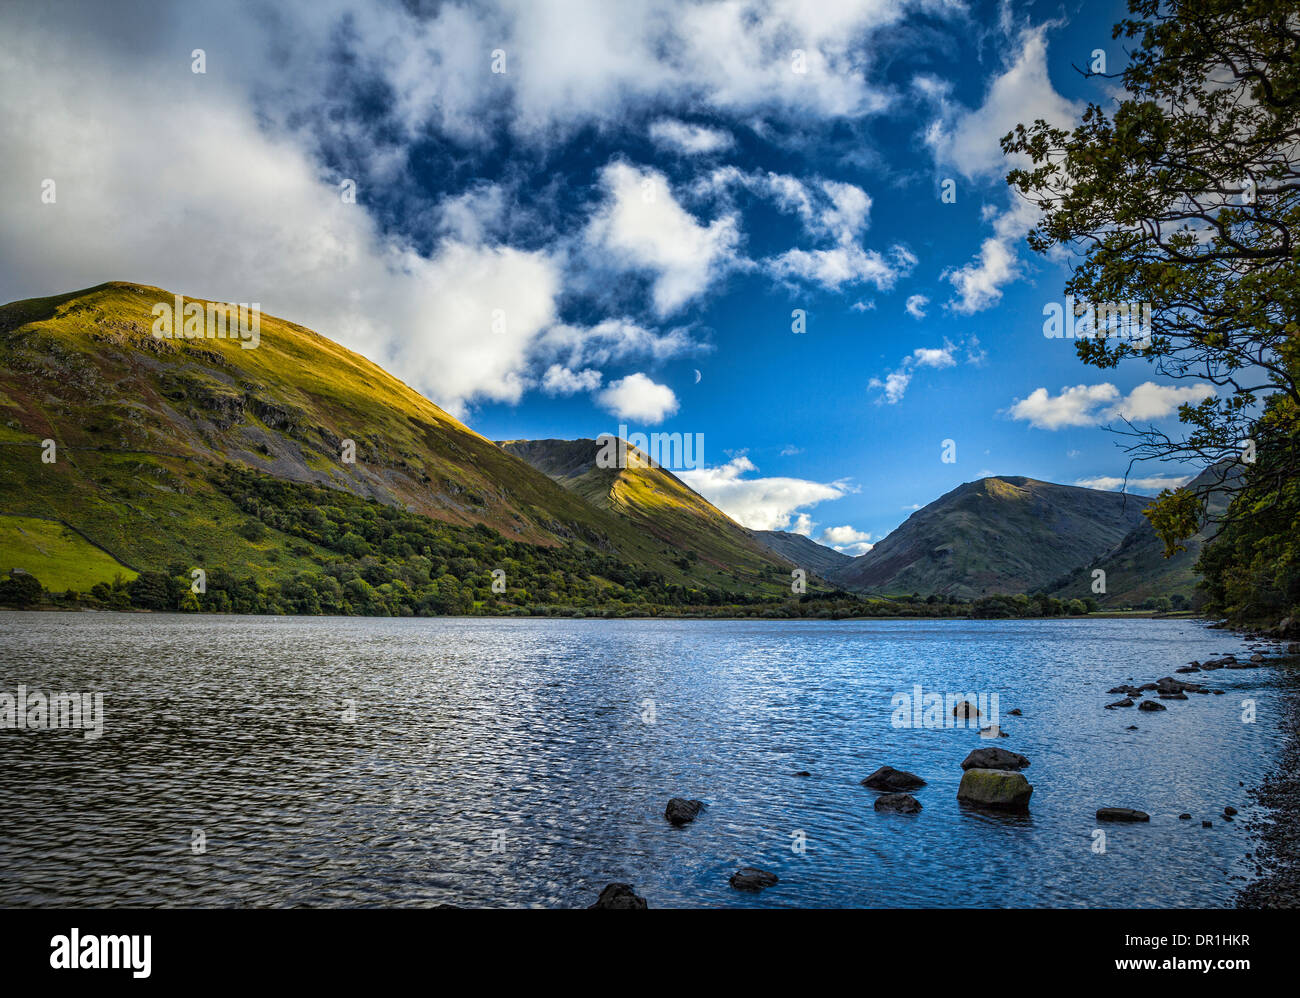 Brotherswater and Hartsop Dodd, Patterdale, Lake District, England - Stock Image